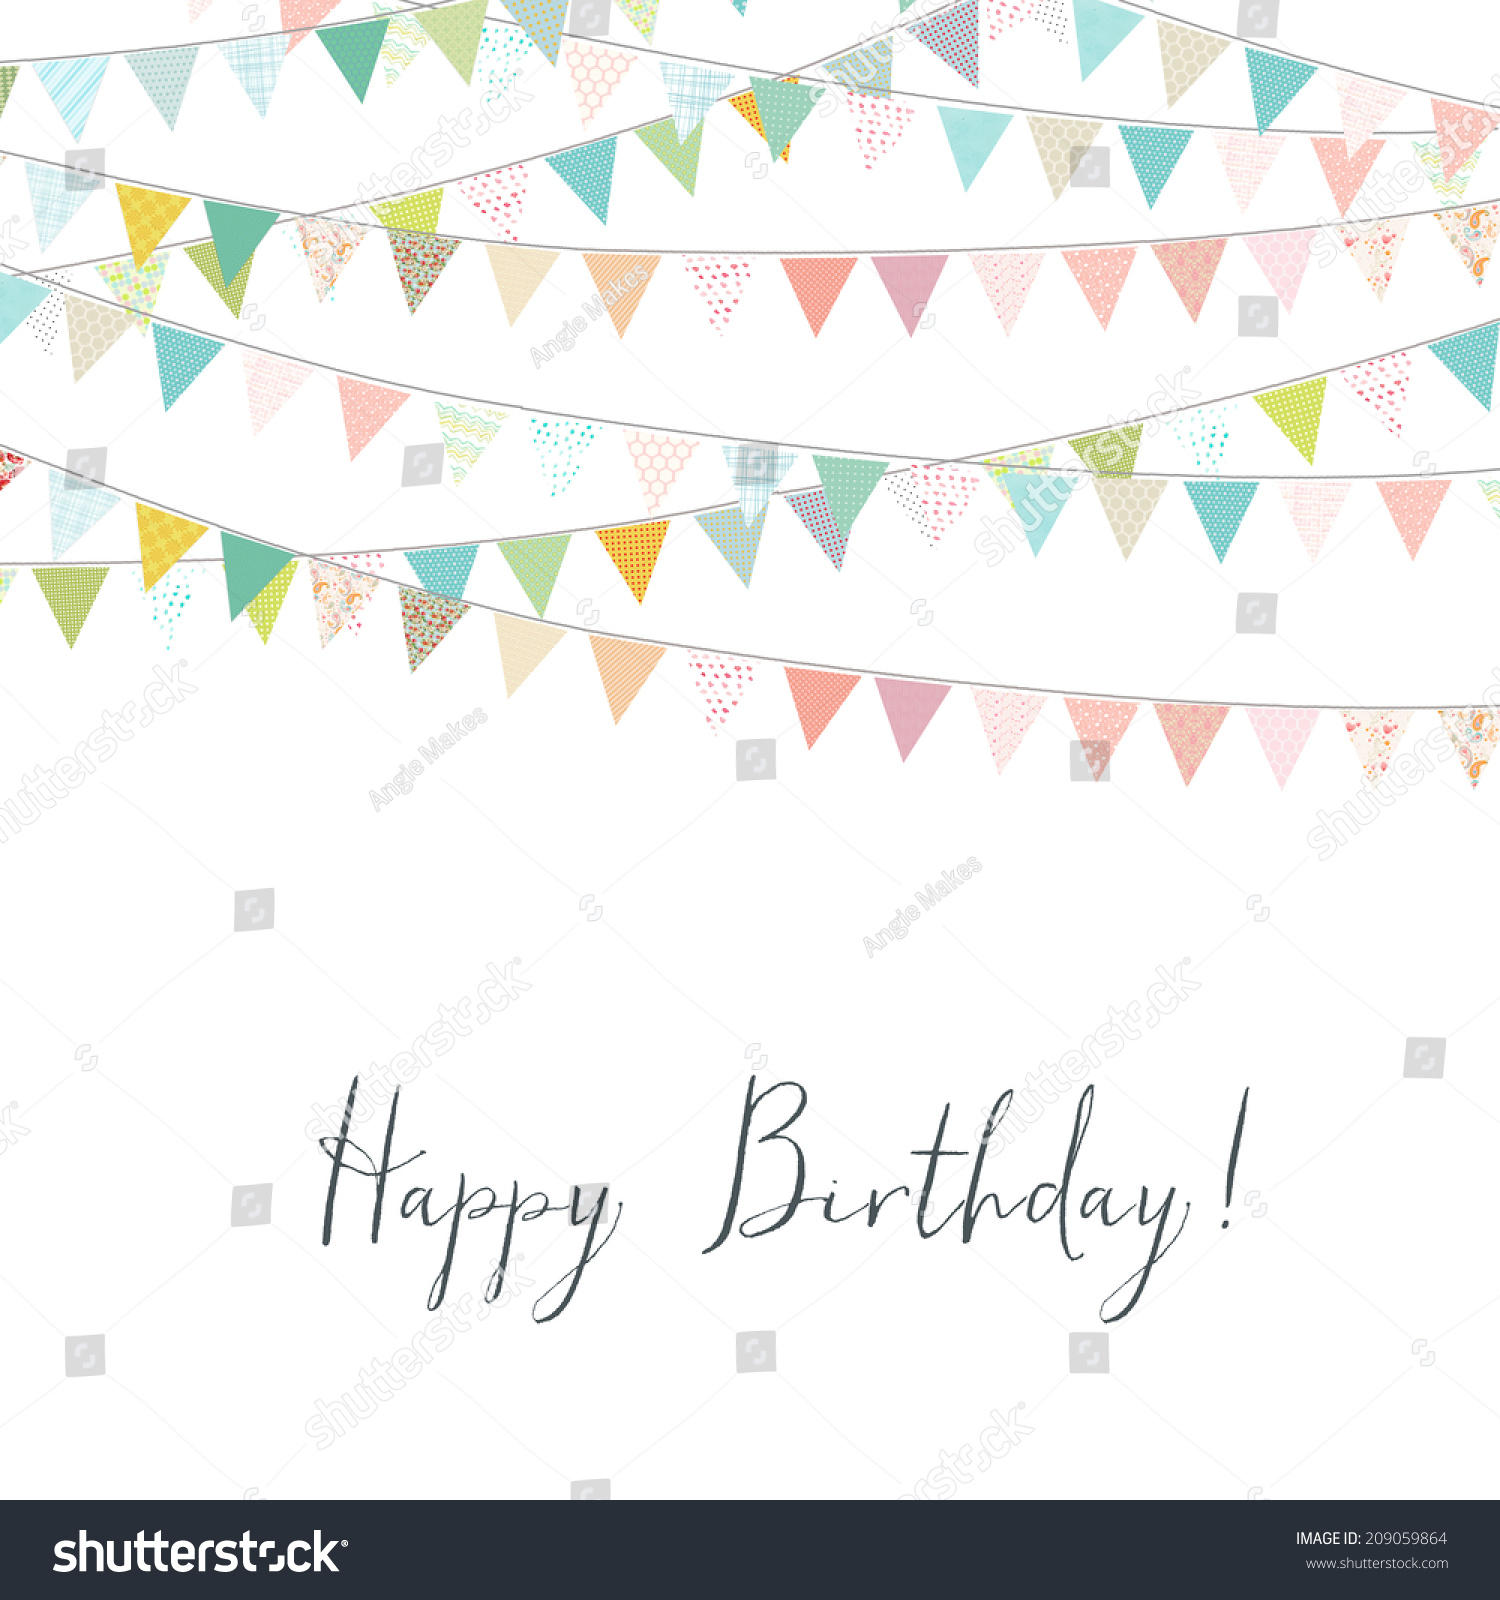 Happy Birthday Card Colorful Bunting Flags Stock Illustration 209059864 - Shu...